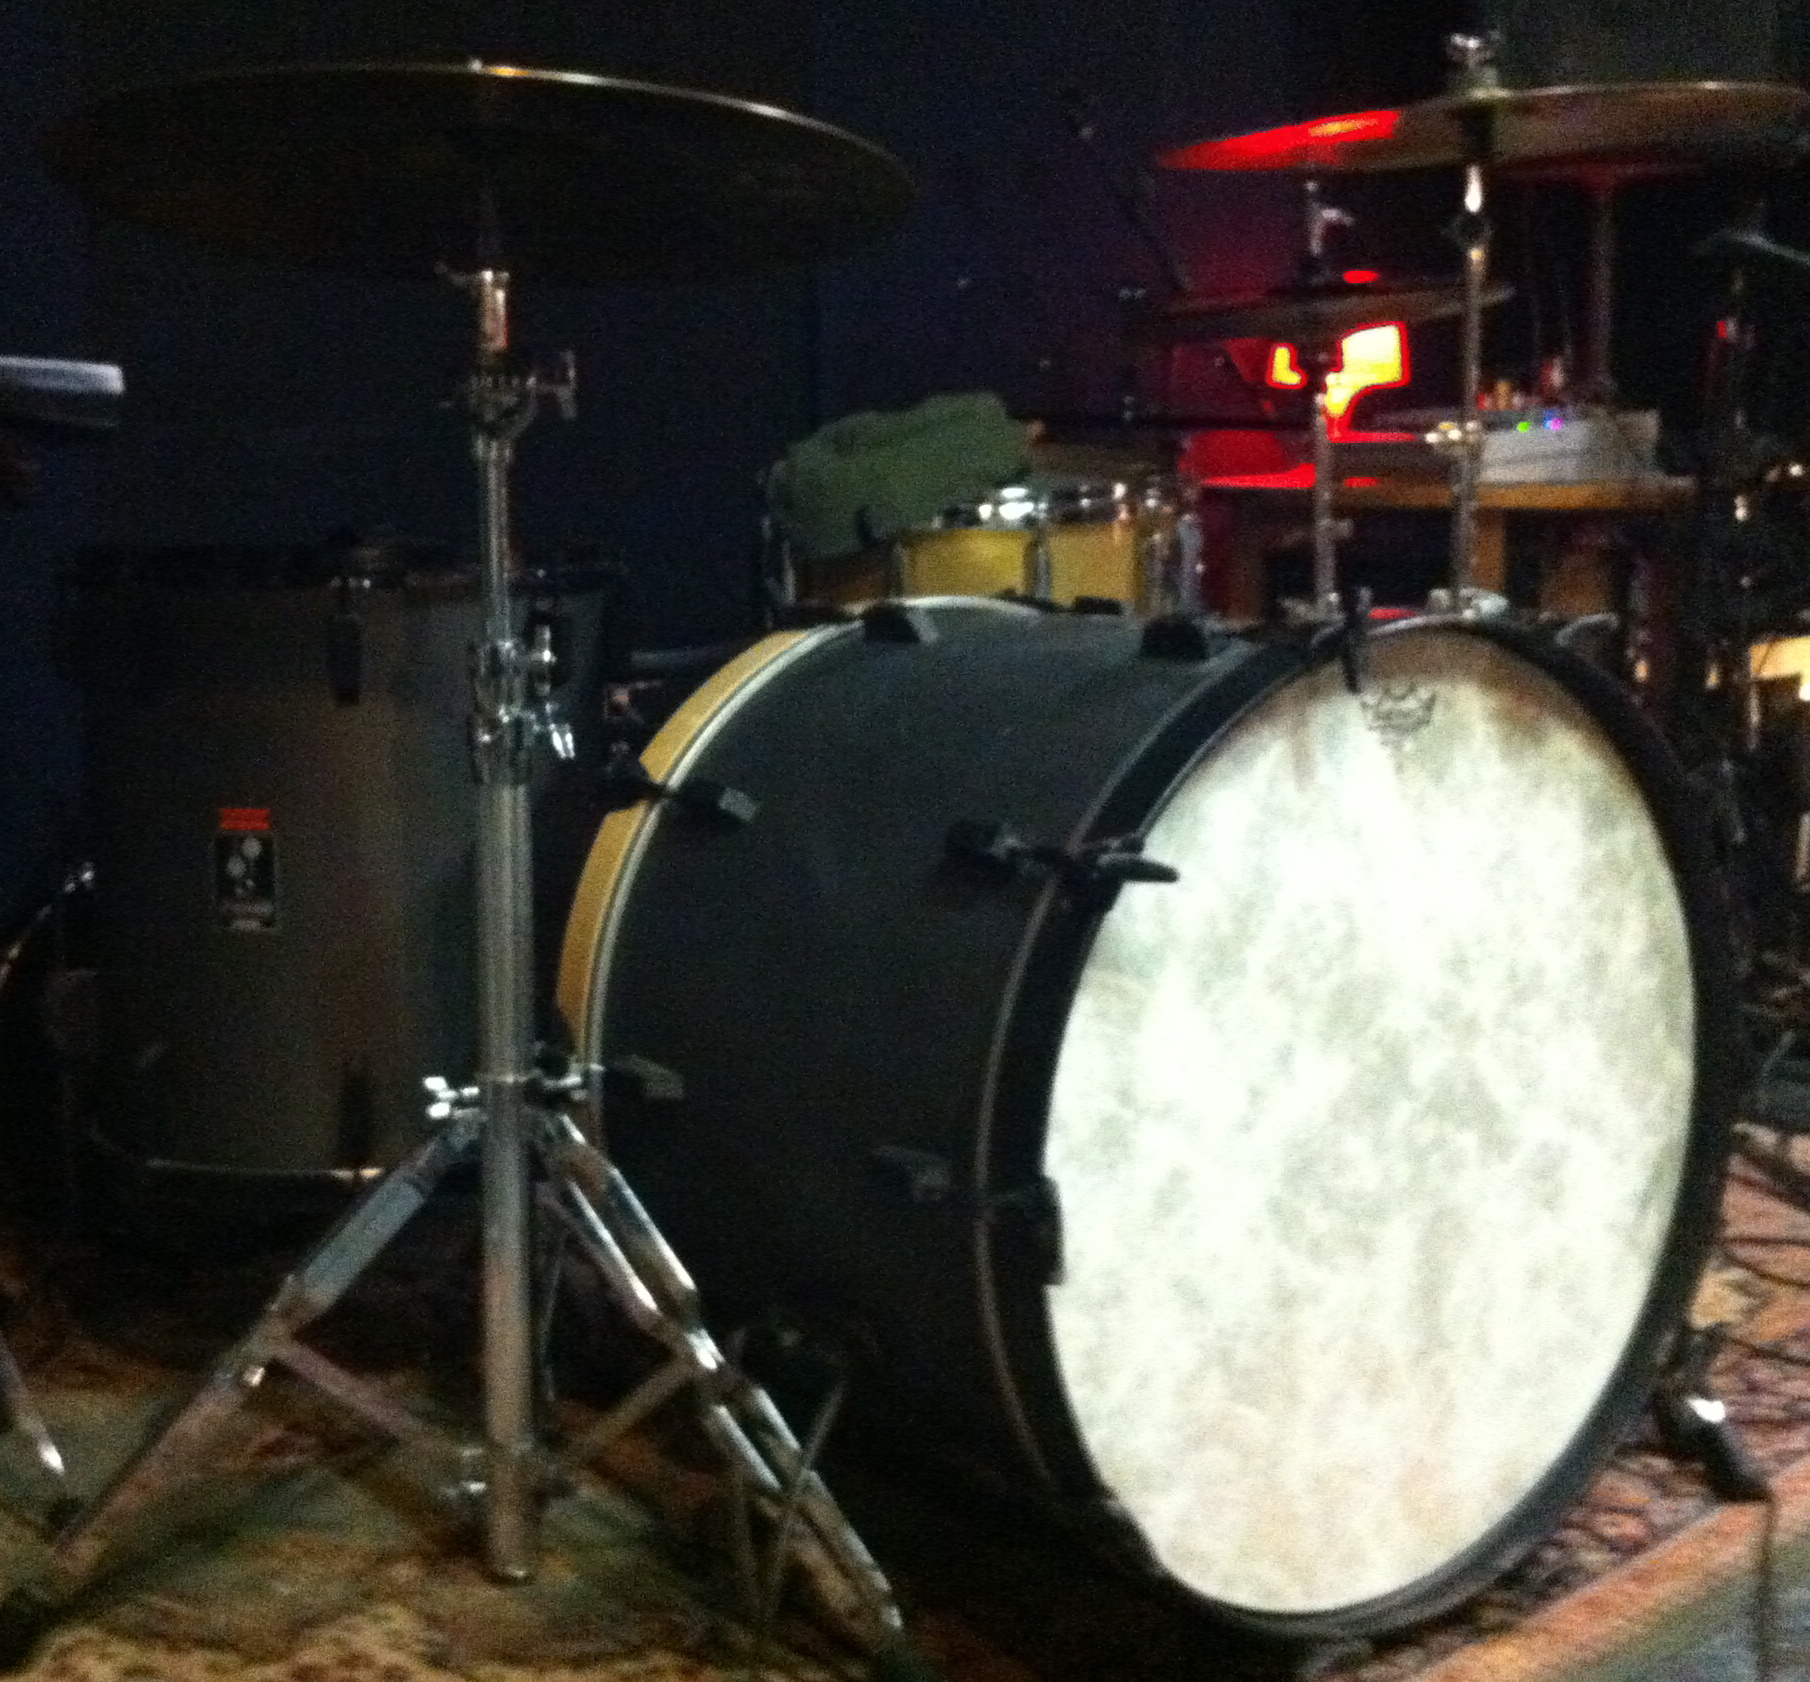 Sonor Phonic Plus Hi-Tech